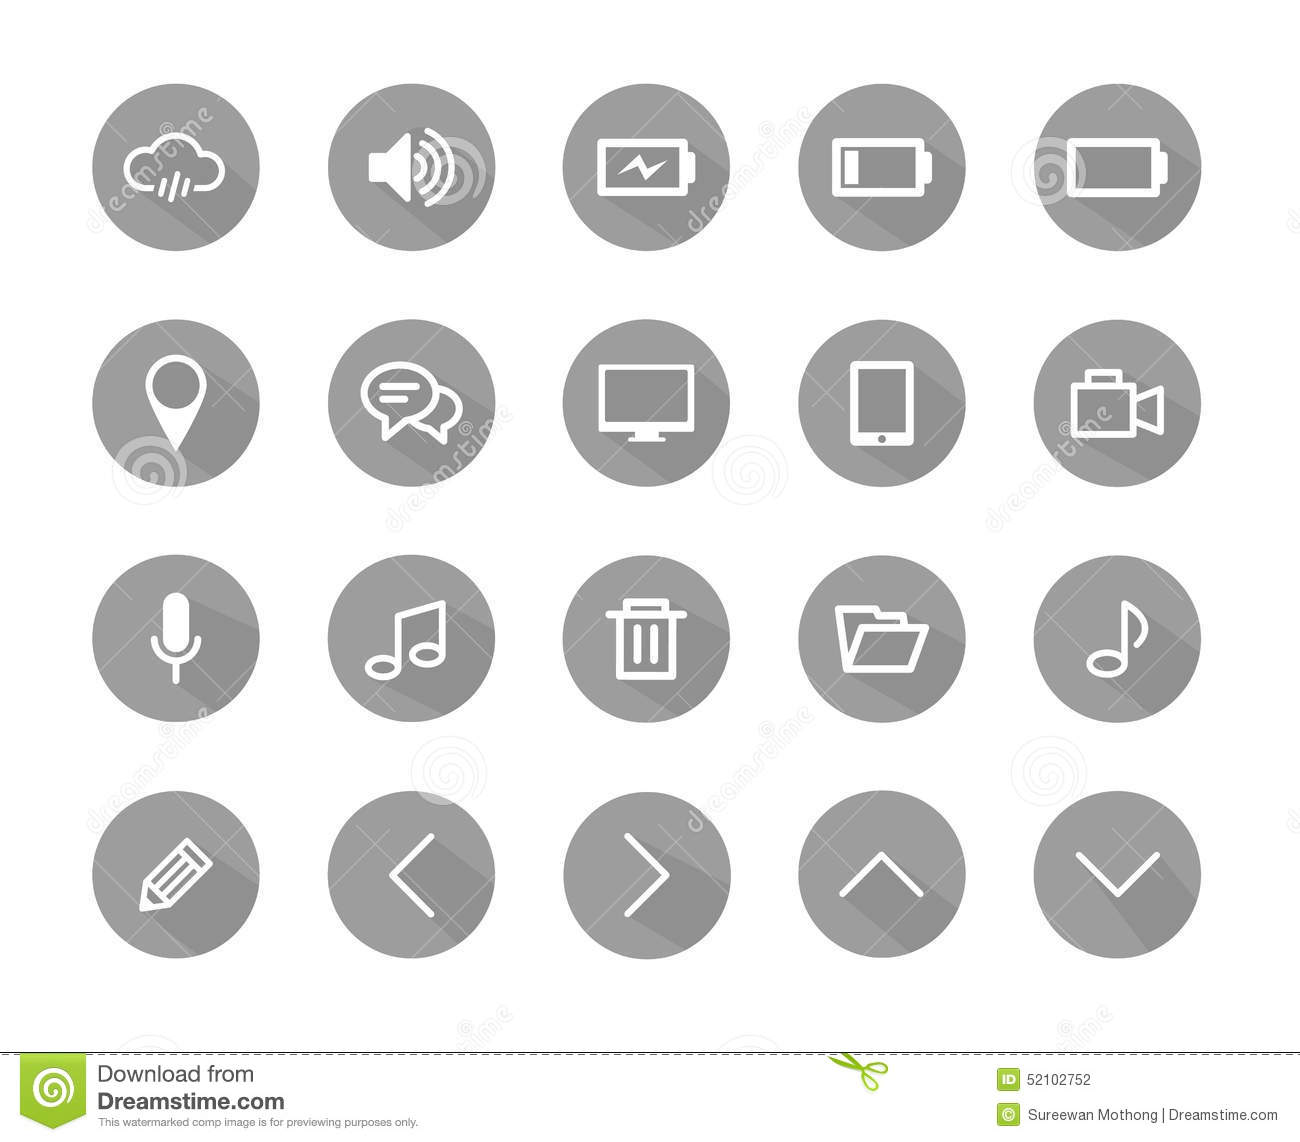 flat icon grey color flat icons icons set icons vector